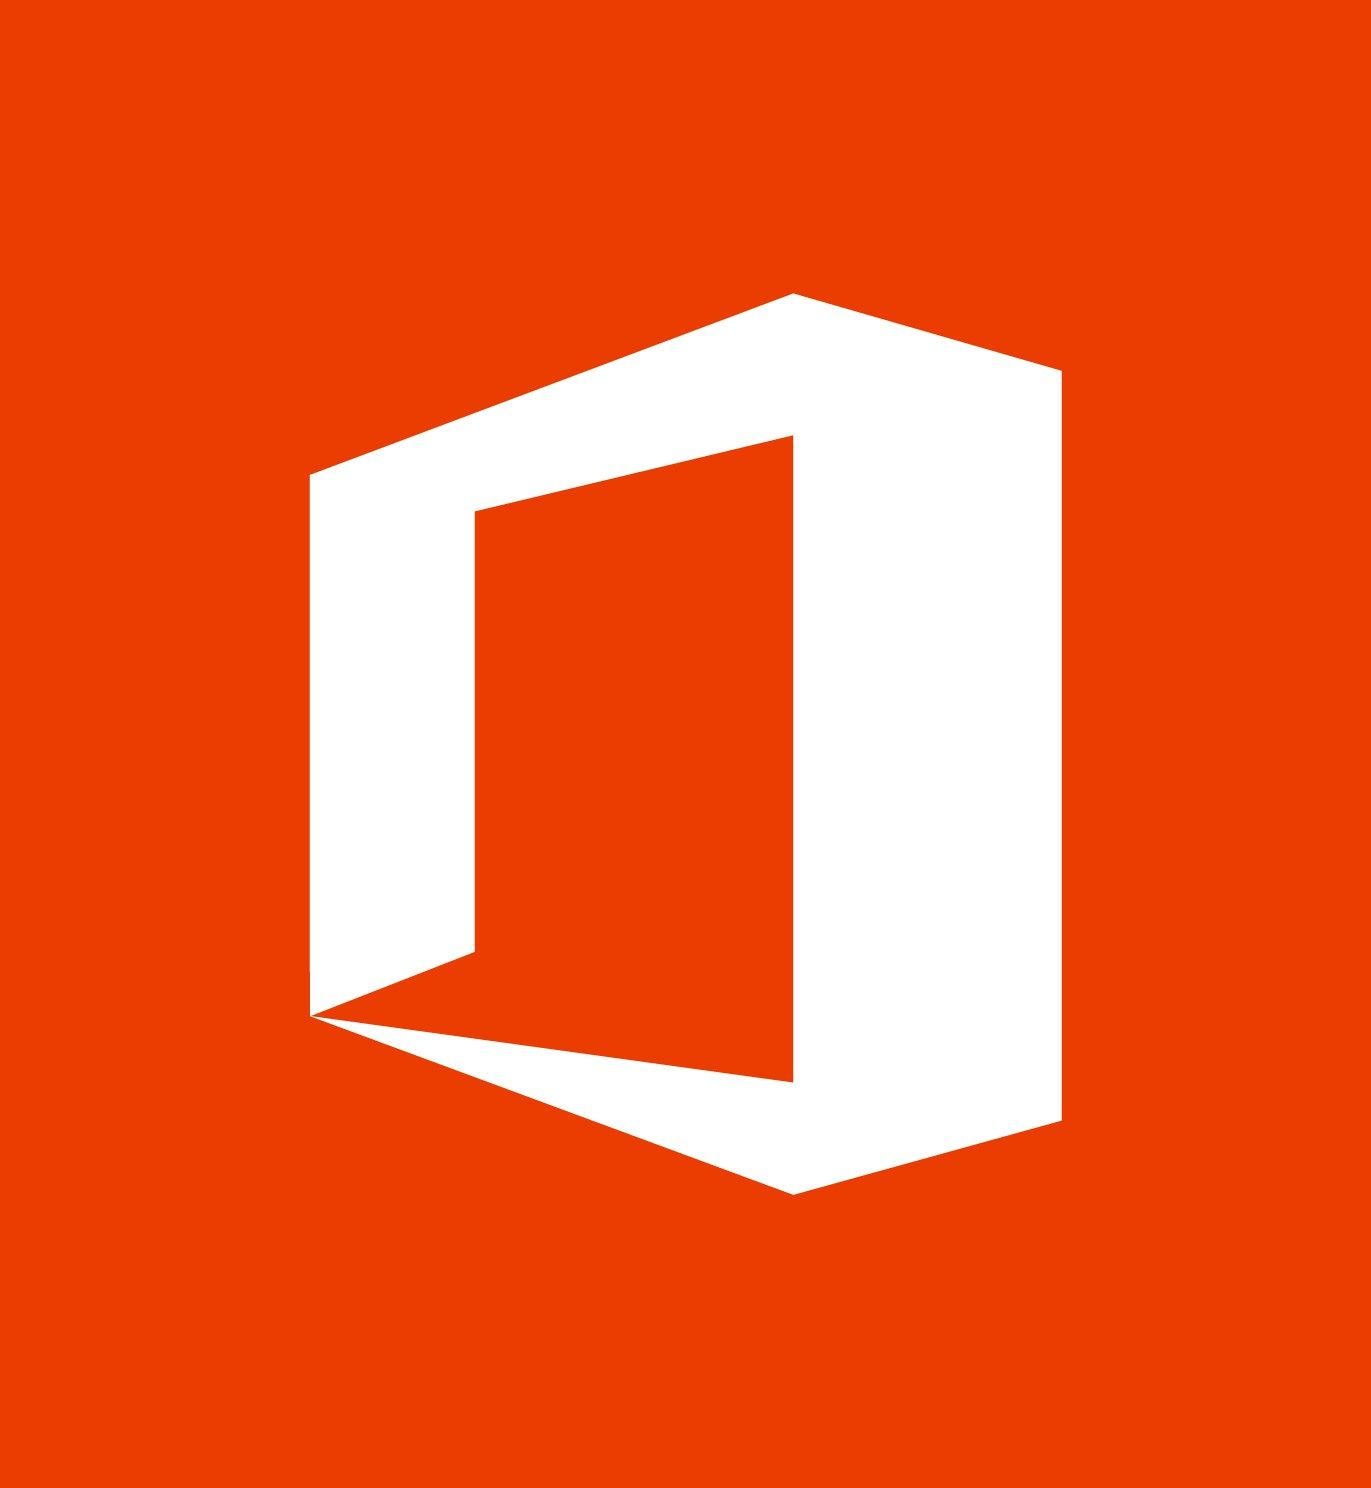 Microsoft Office 2018 Crack can create edit, open, create and save